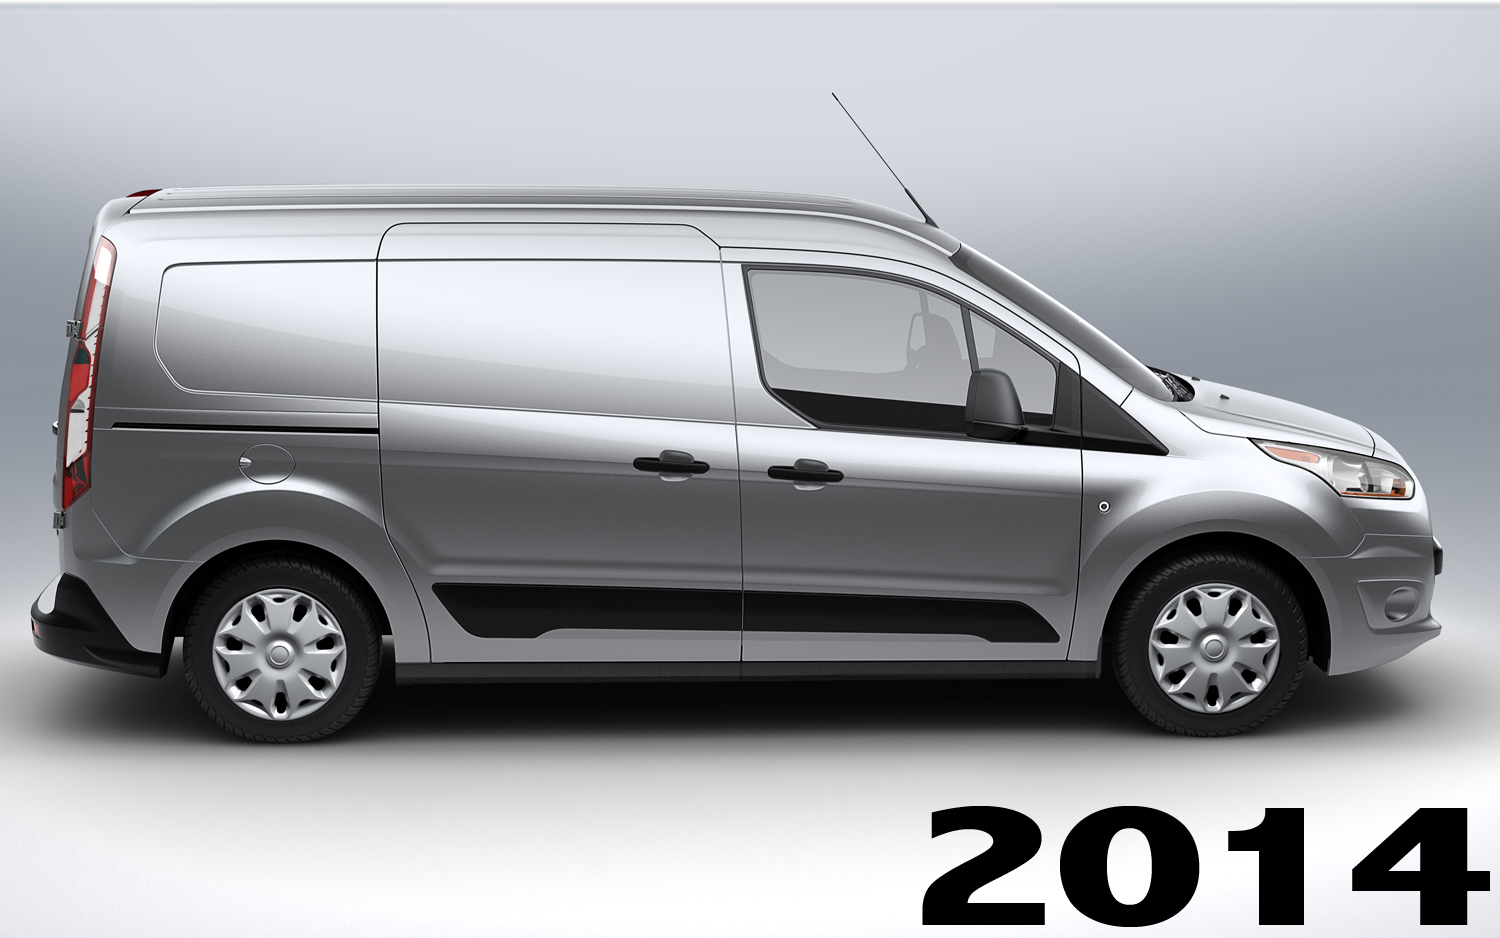 Ford 2014 Transit Connect similar  free download image